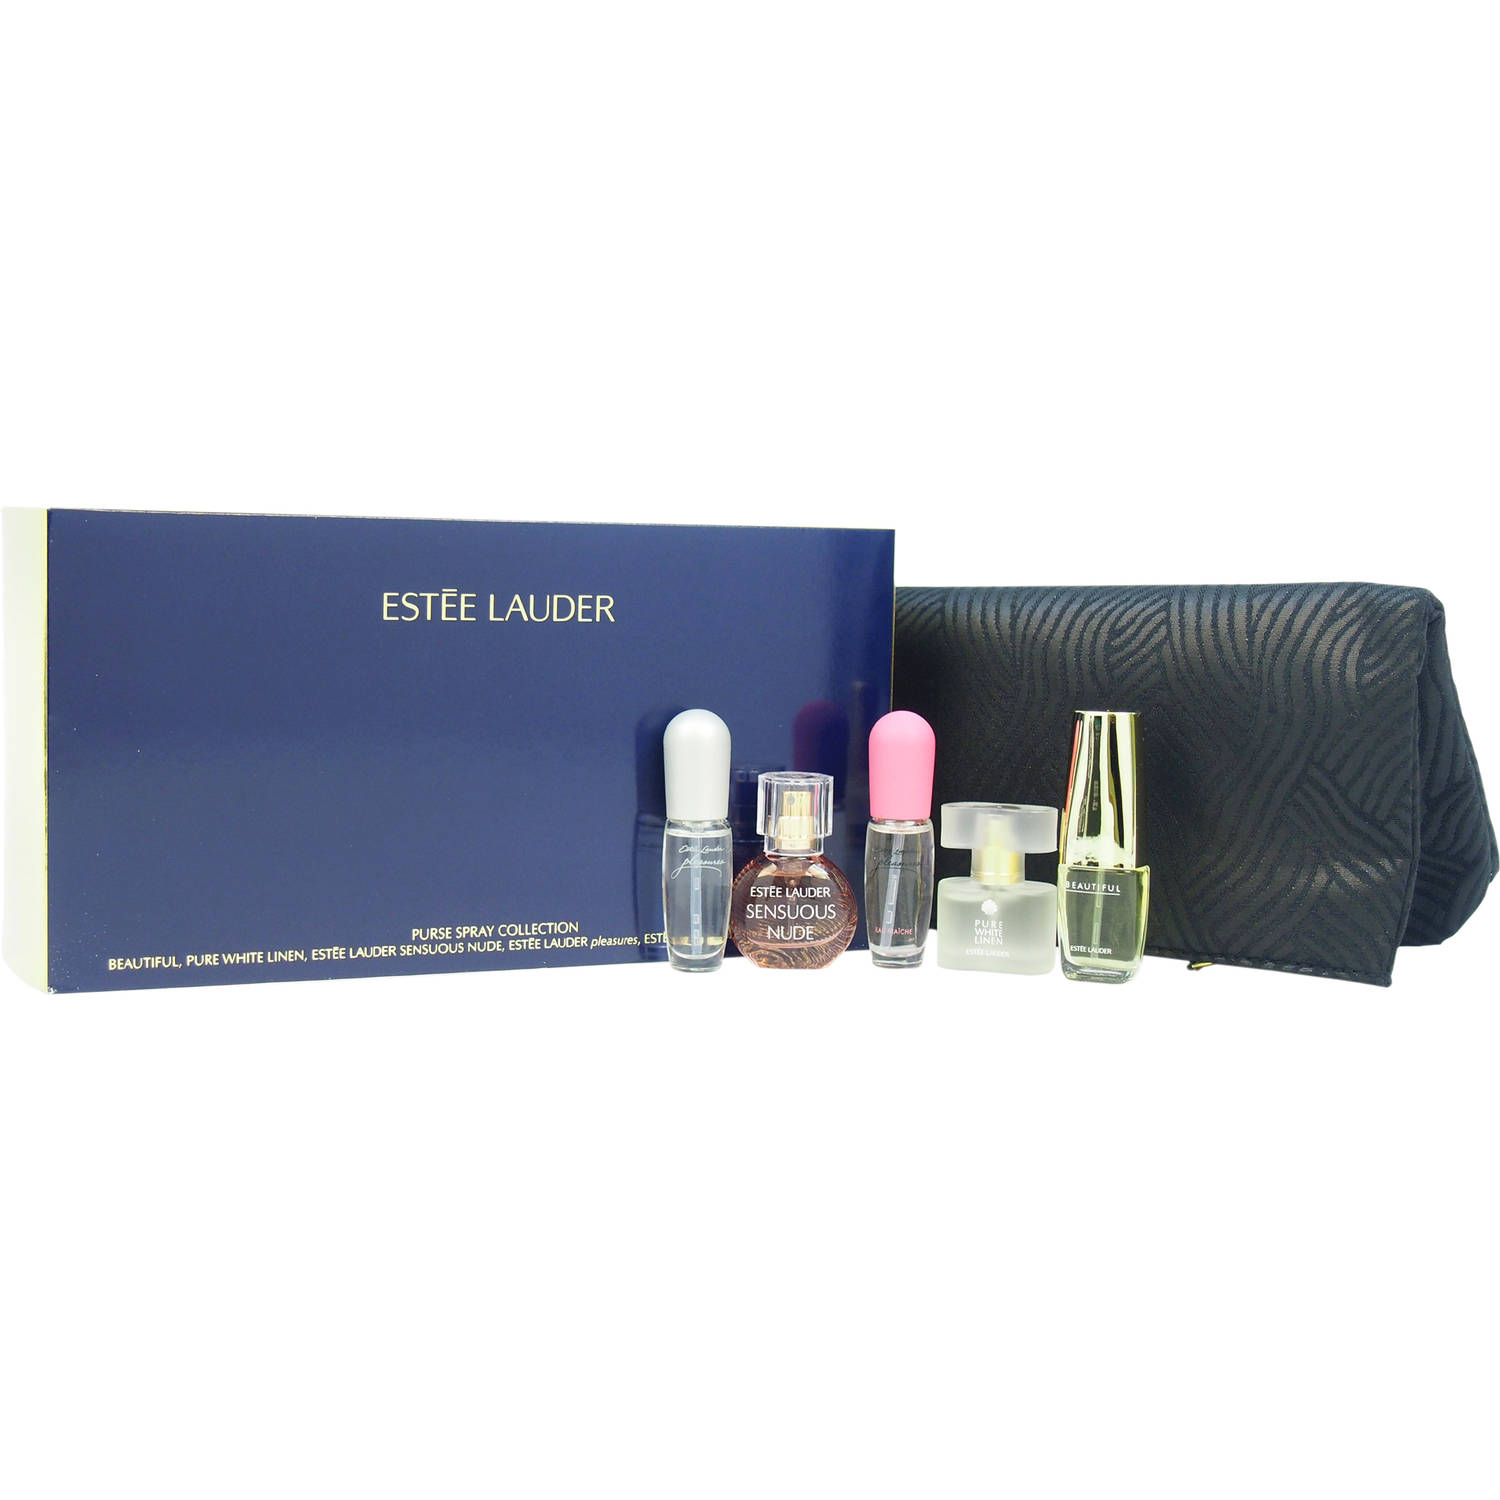 Estee Lauder Purse Spray, Collection for Women Mini Fragrance Gift Set, 6 pc - Walmart.com